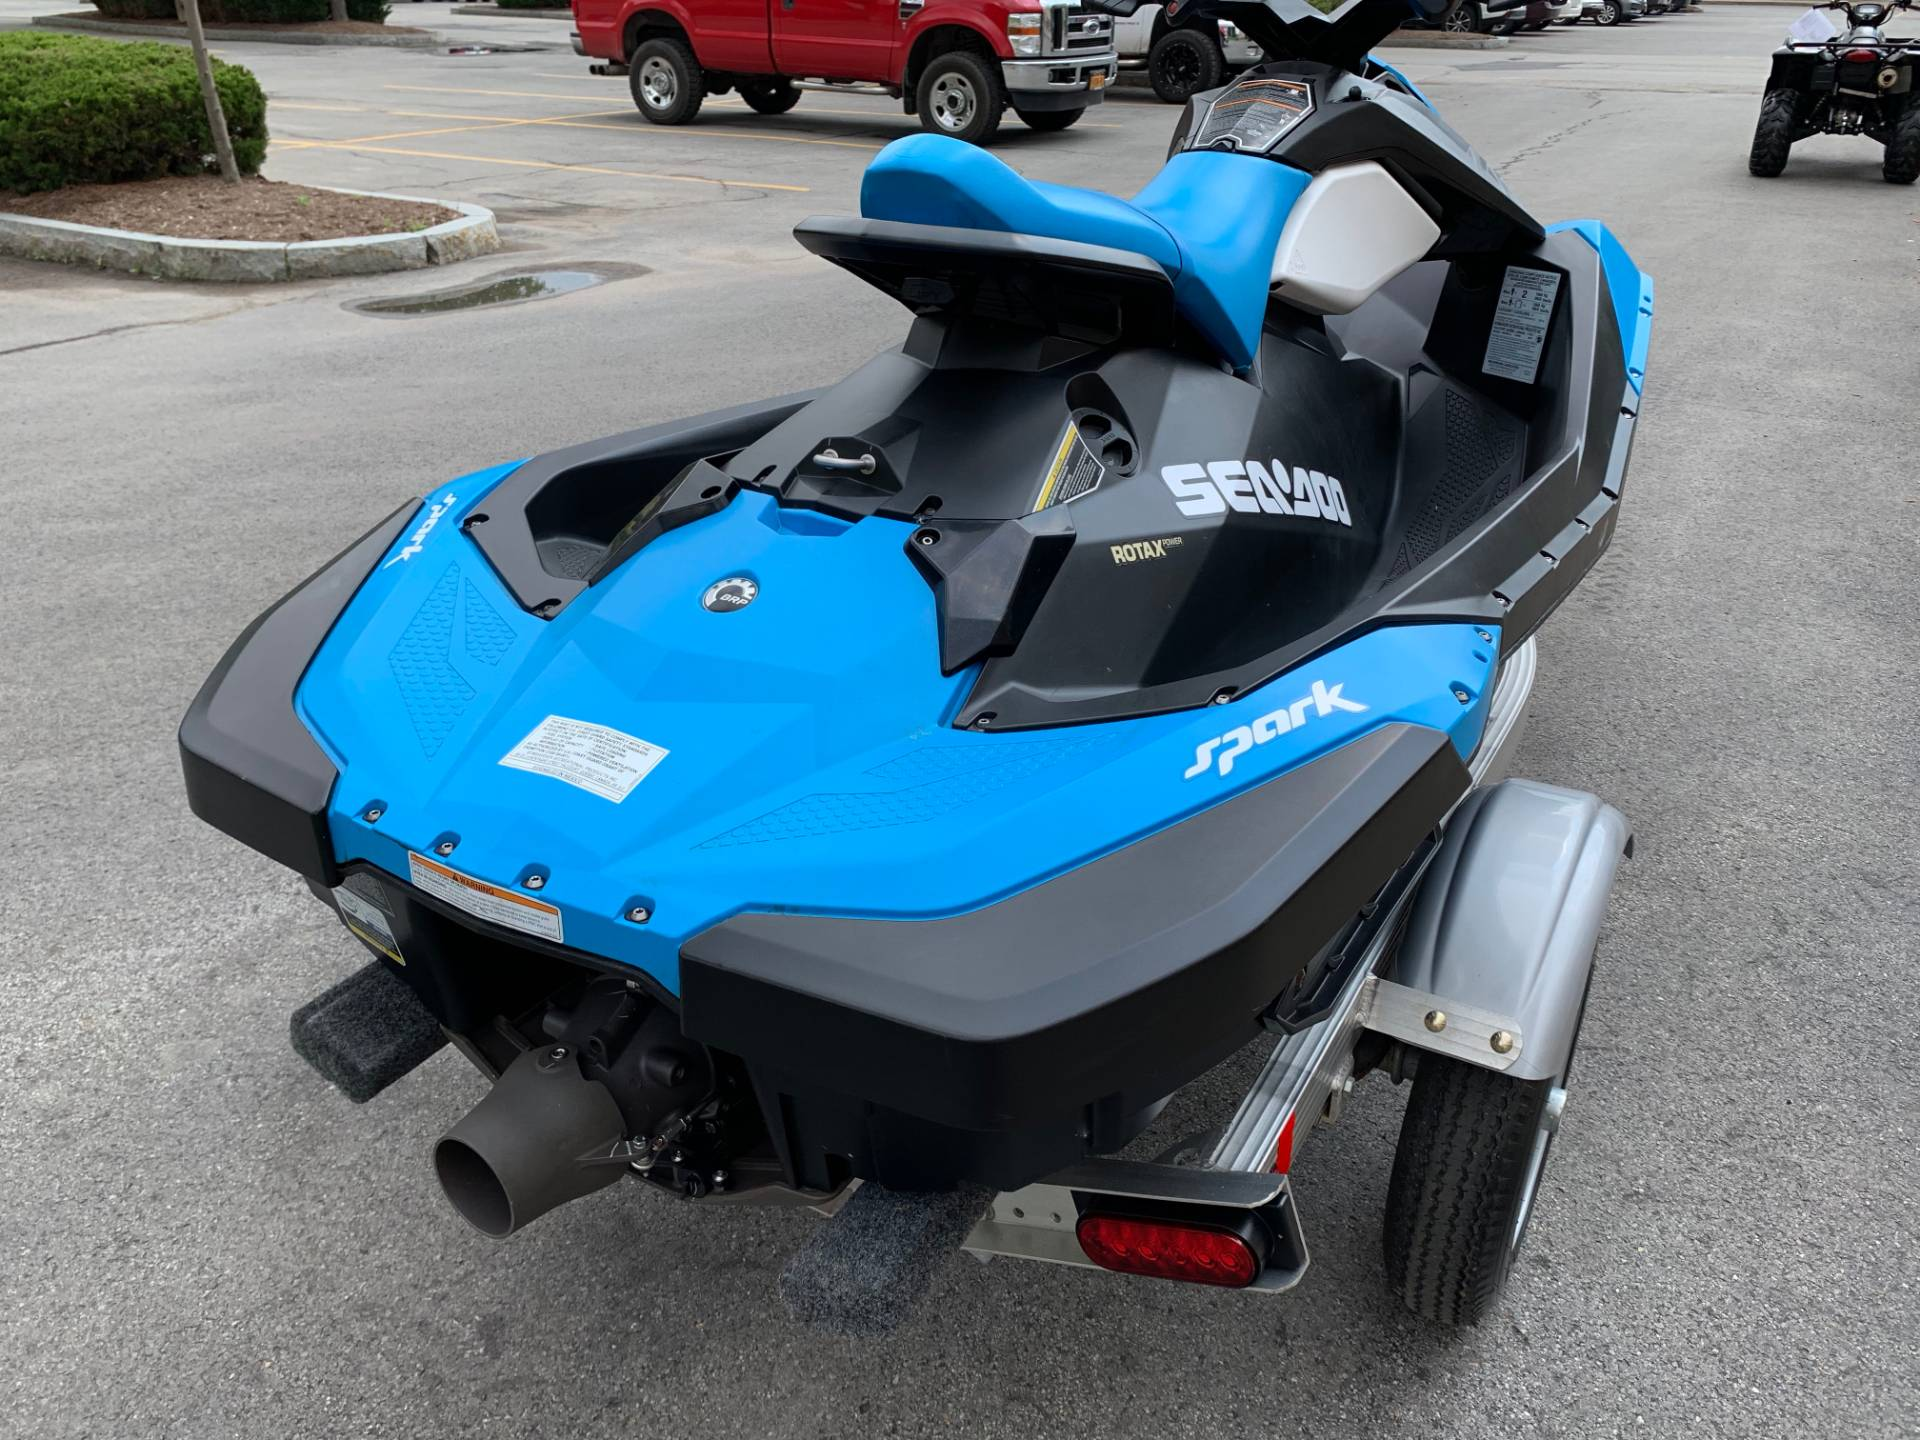 2016 Sea-Doo Spark 2up 900 ACE in Herkimer, New York - Photo 17